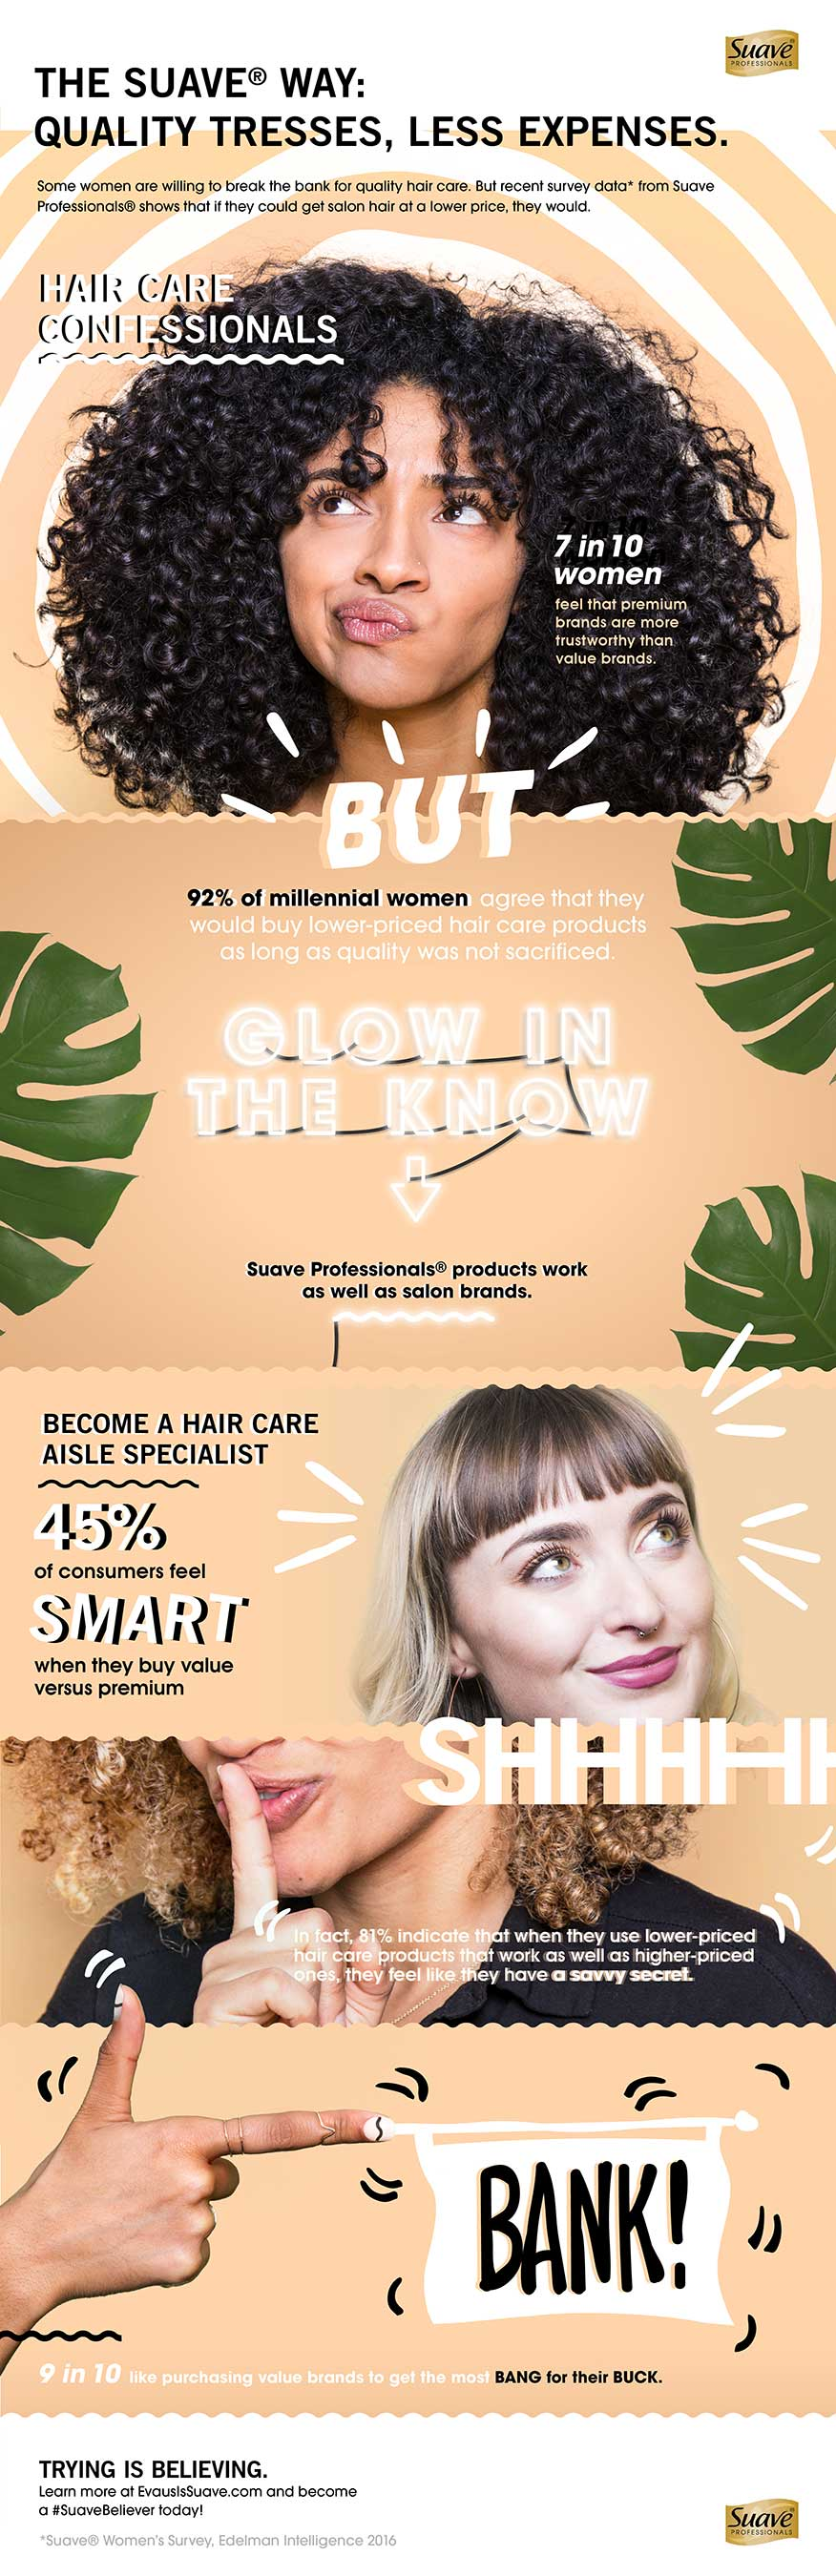 suave-women's-survey-infographic-1-HR.jpg